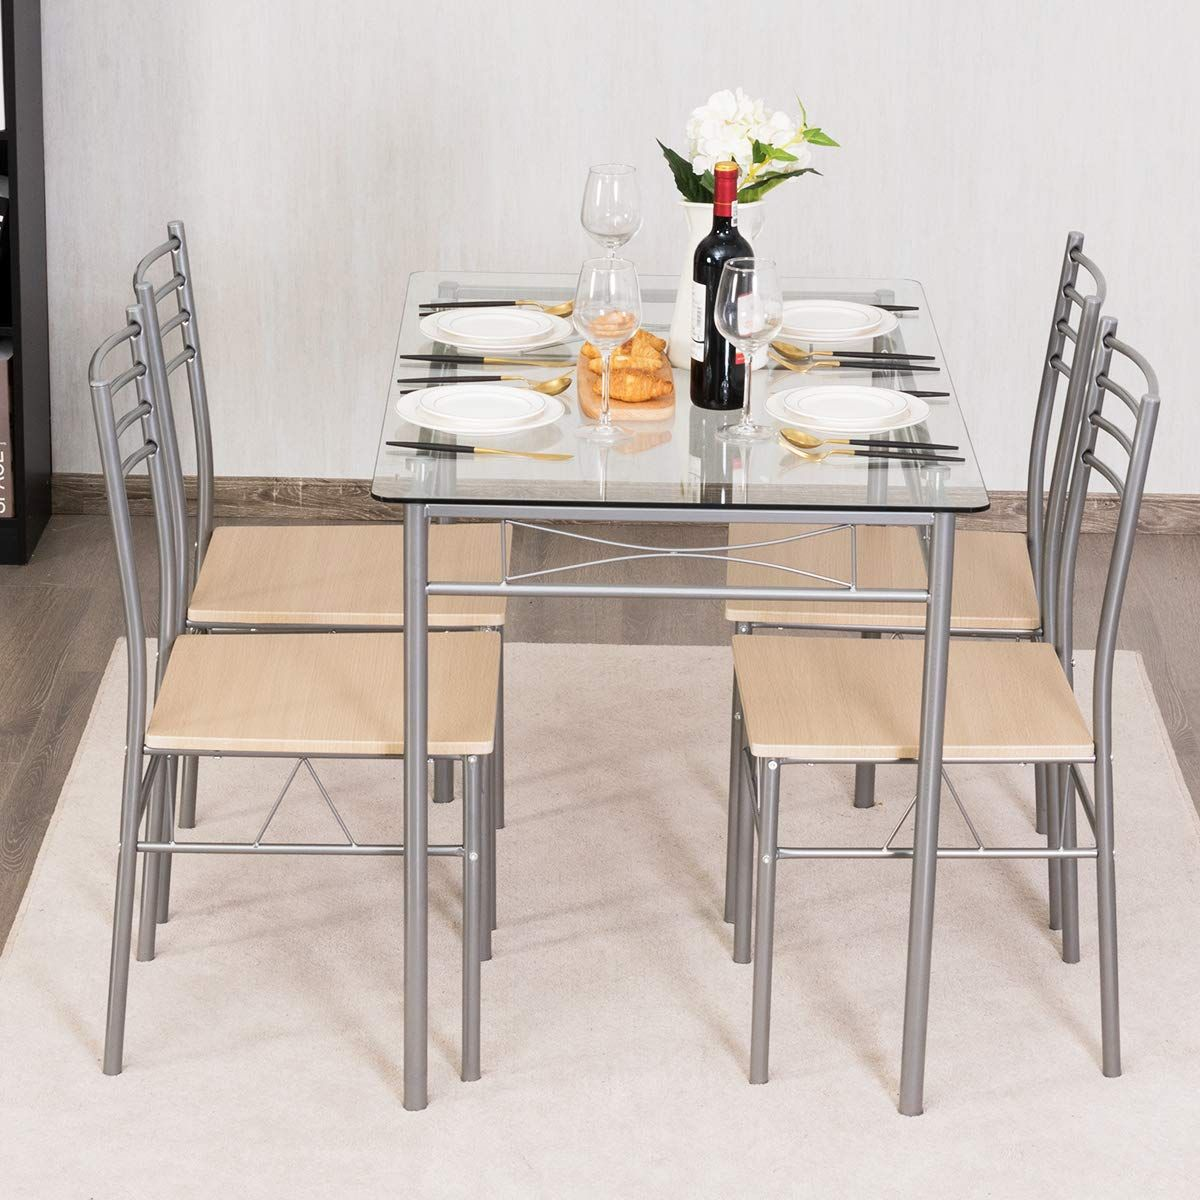 Giantex 5 Piece Dining Set Table And 4 Chairs Glass Top Kitchen Breakfast Furniture More Info Could Be Found At Dining Table Setting Glass Table Dining Set